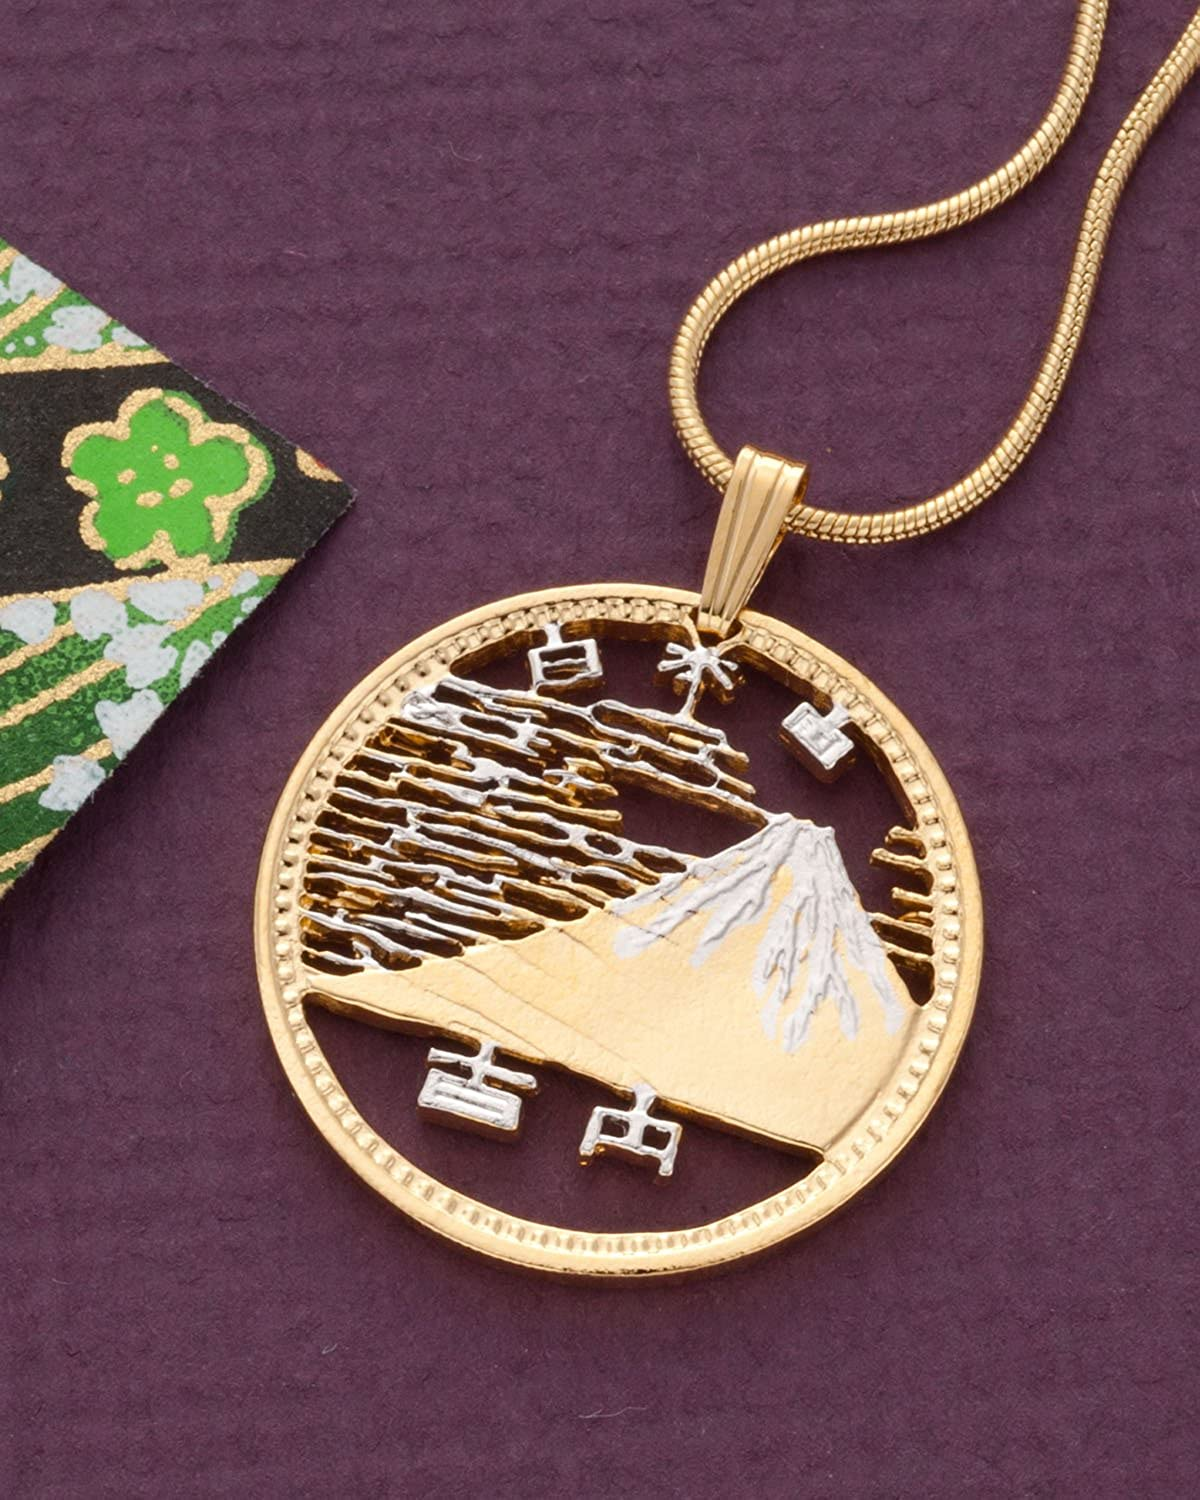 Japn 100 Yen Hand Cut Japanese Coin Pendant /& Necklace